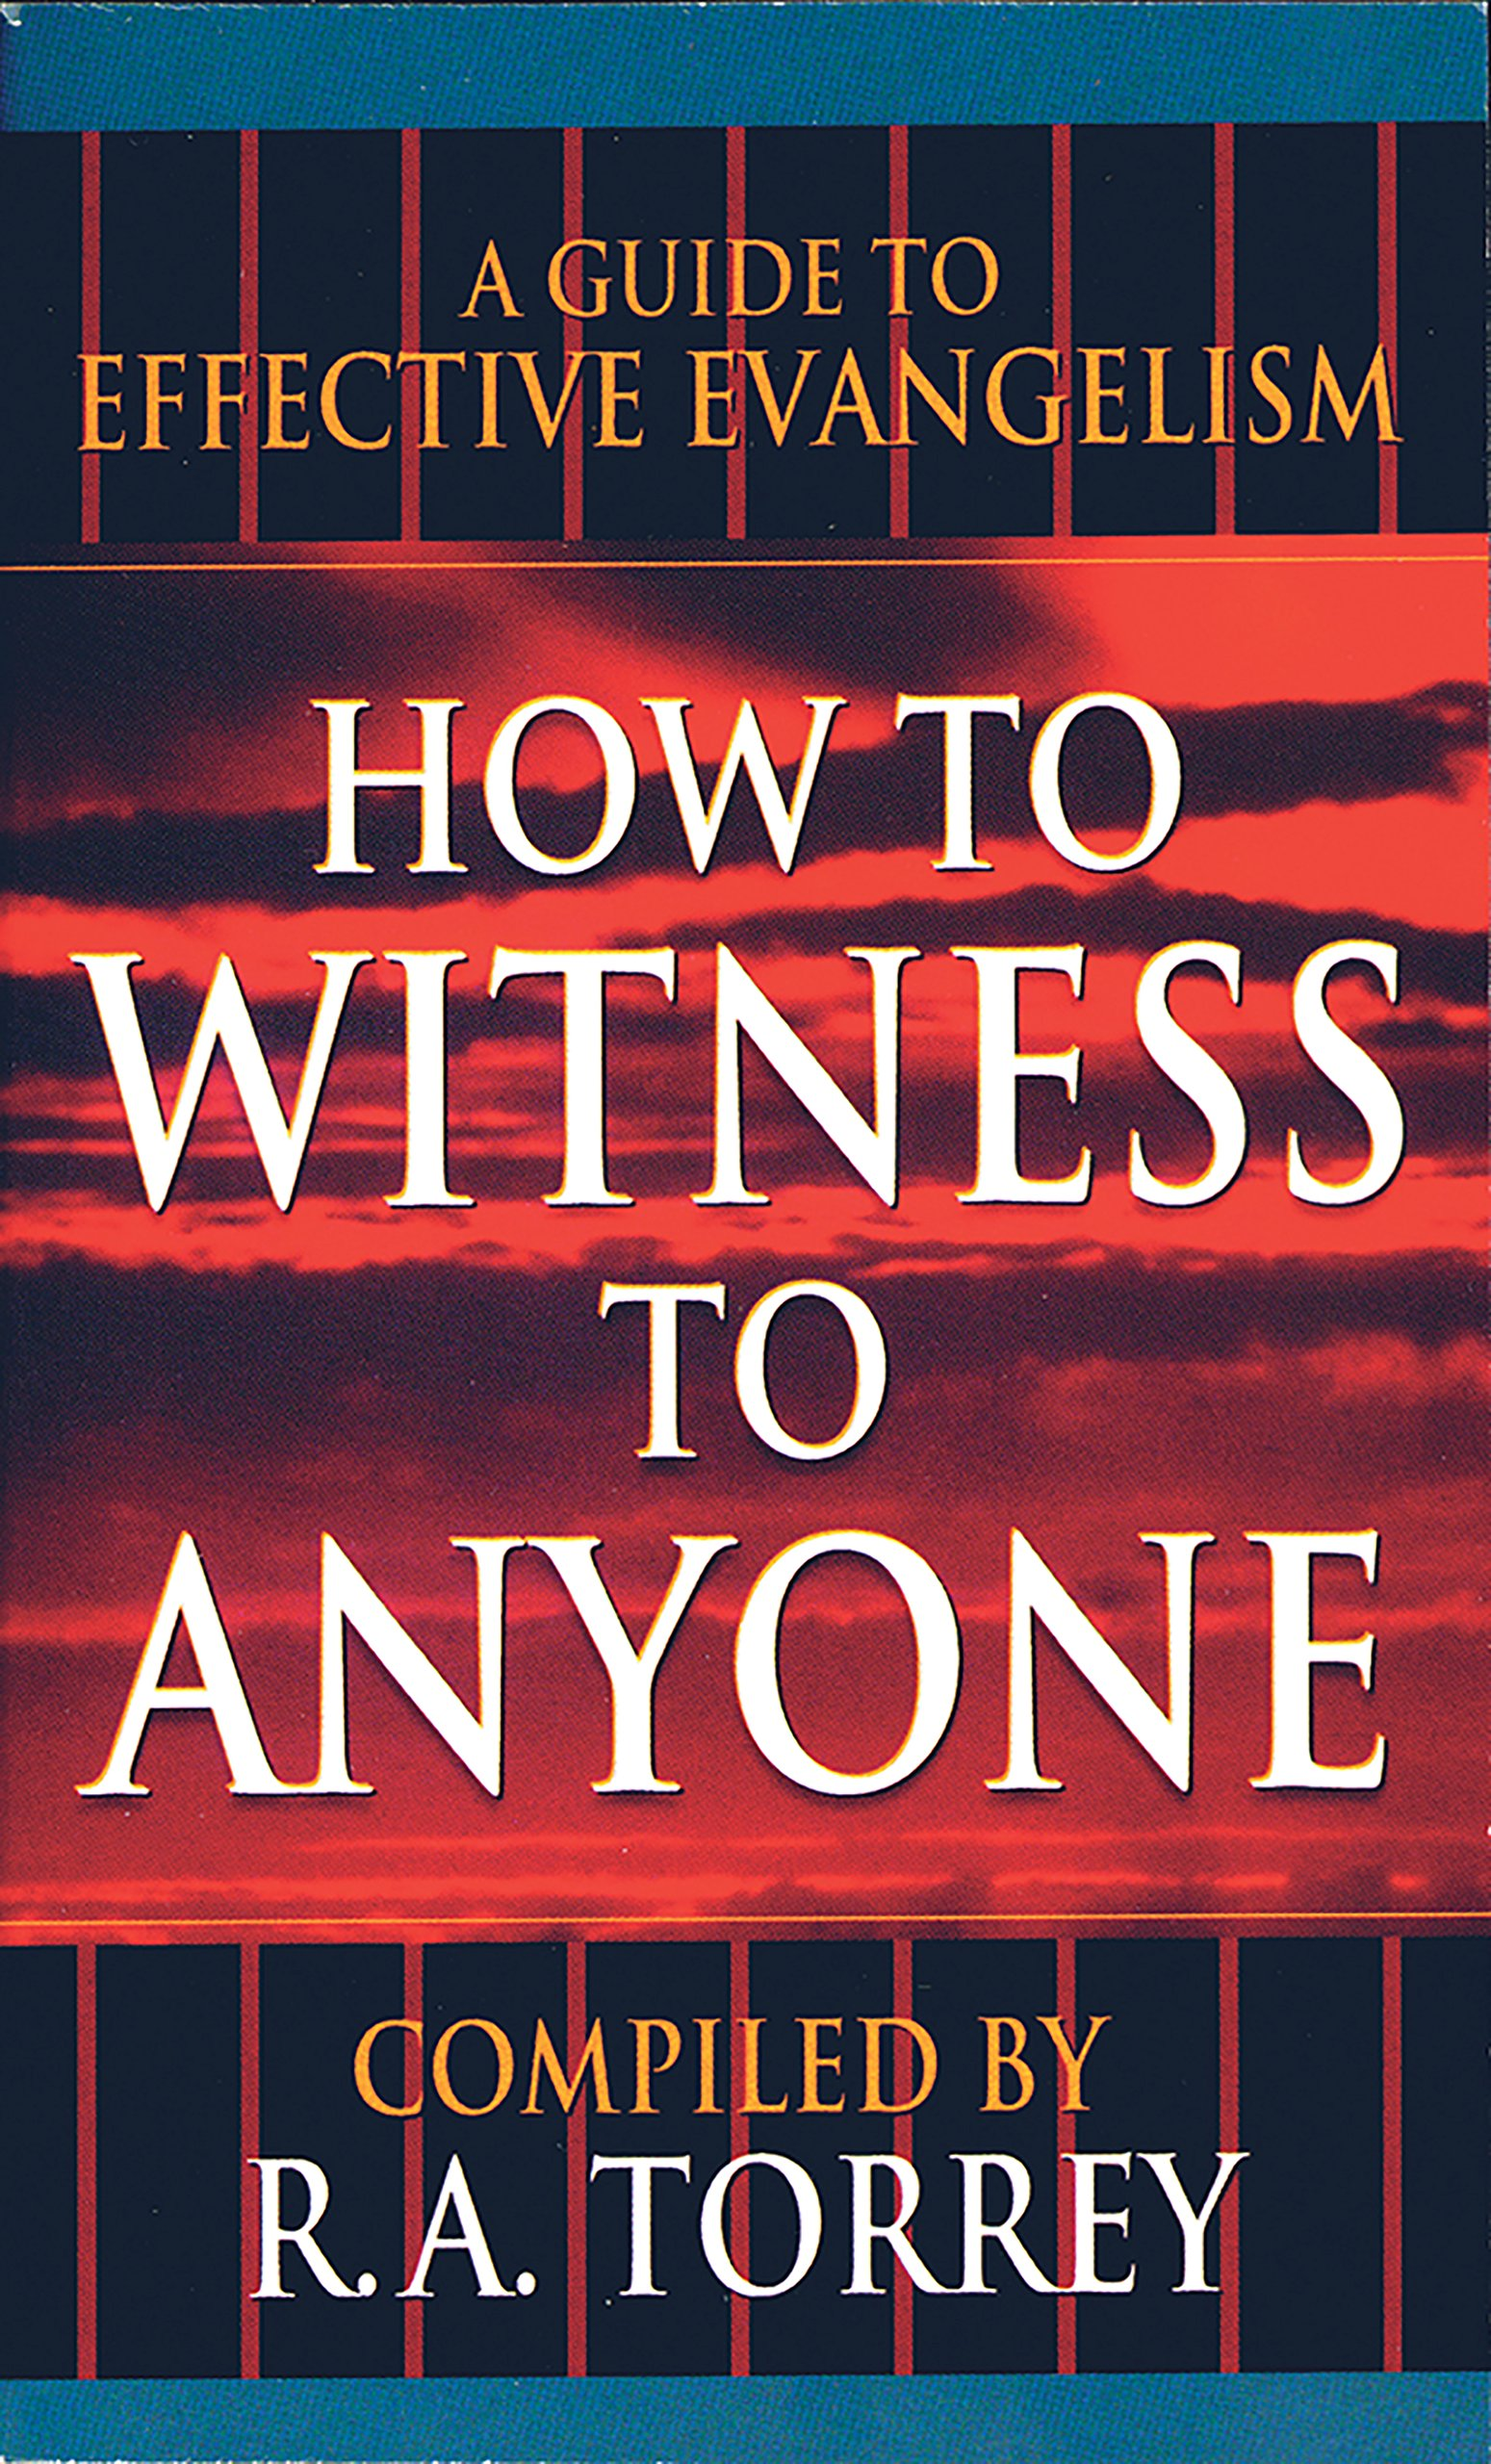 How to Witness to Anyone